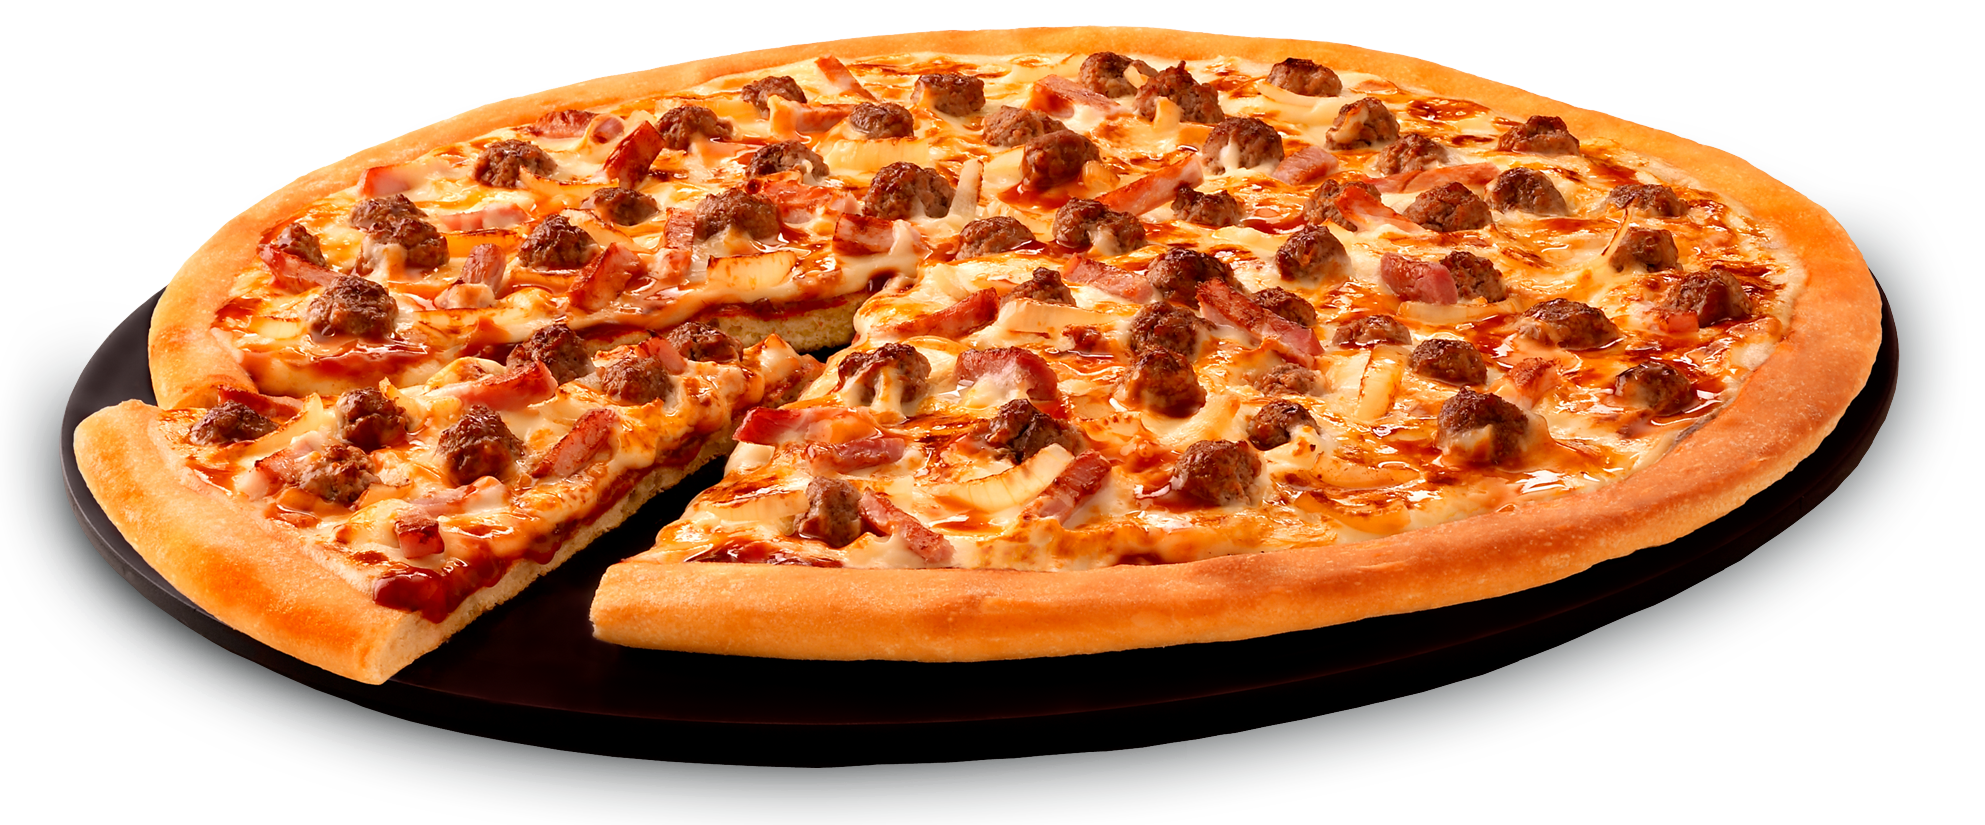 Pizza clipart top view. Icon web icons png